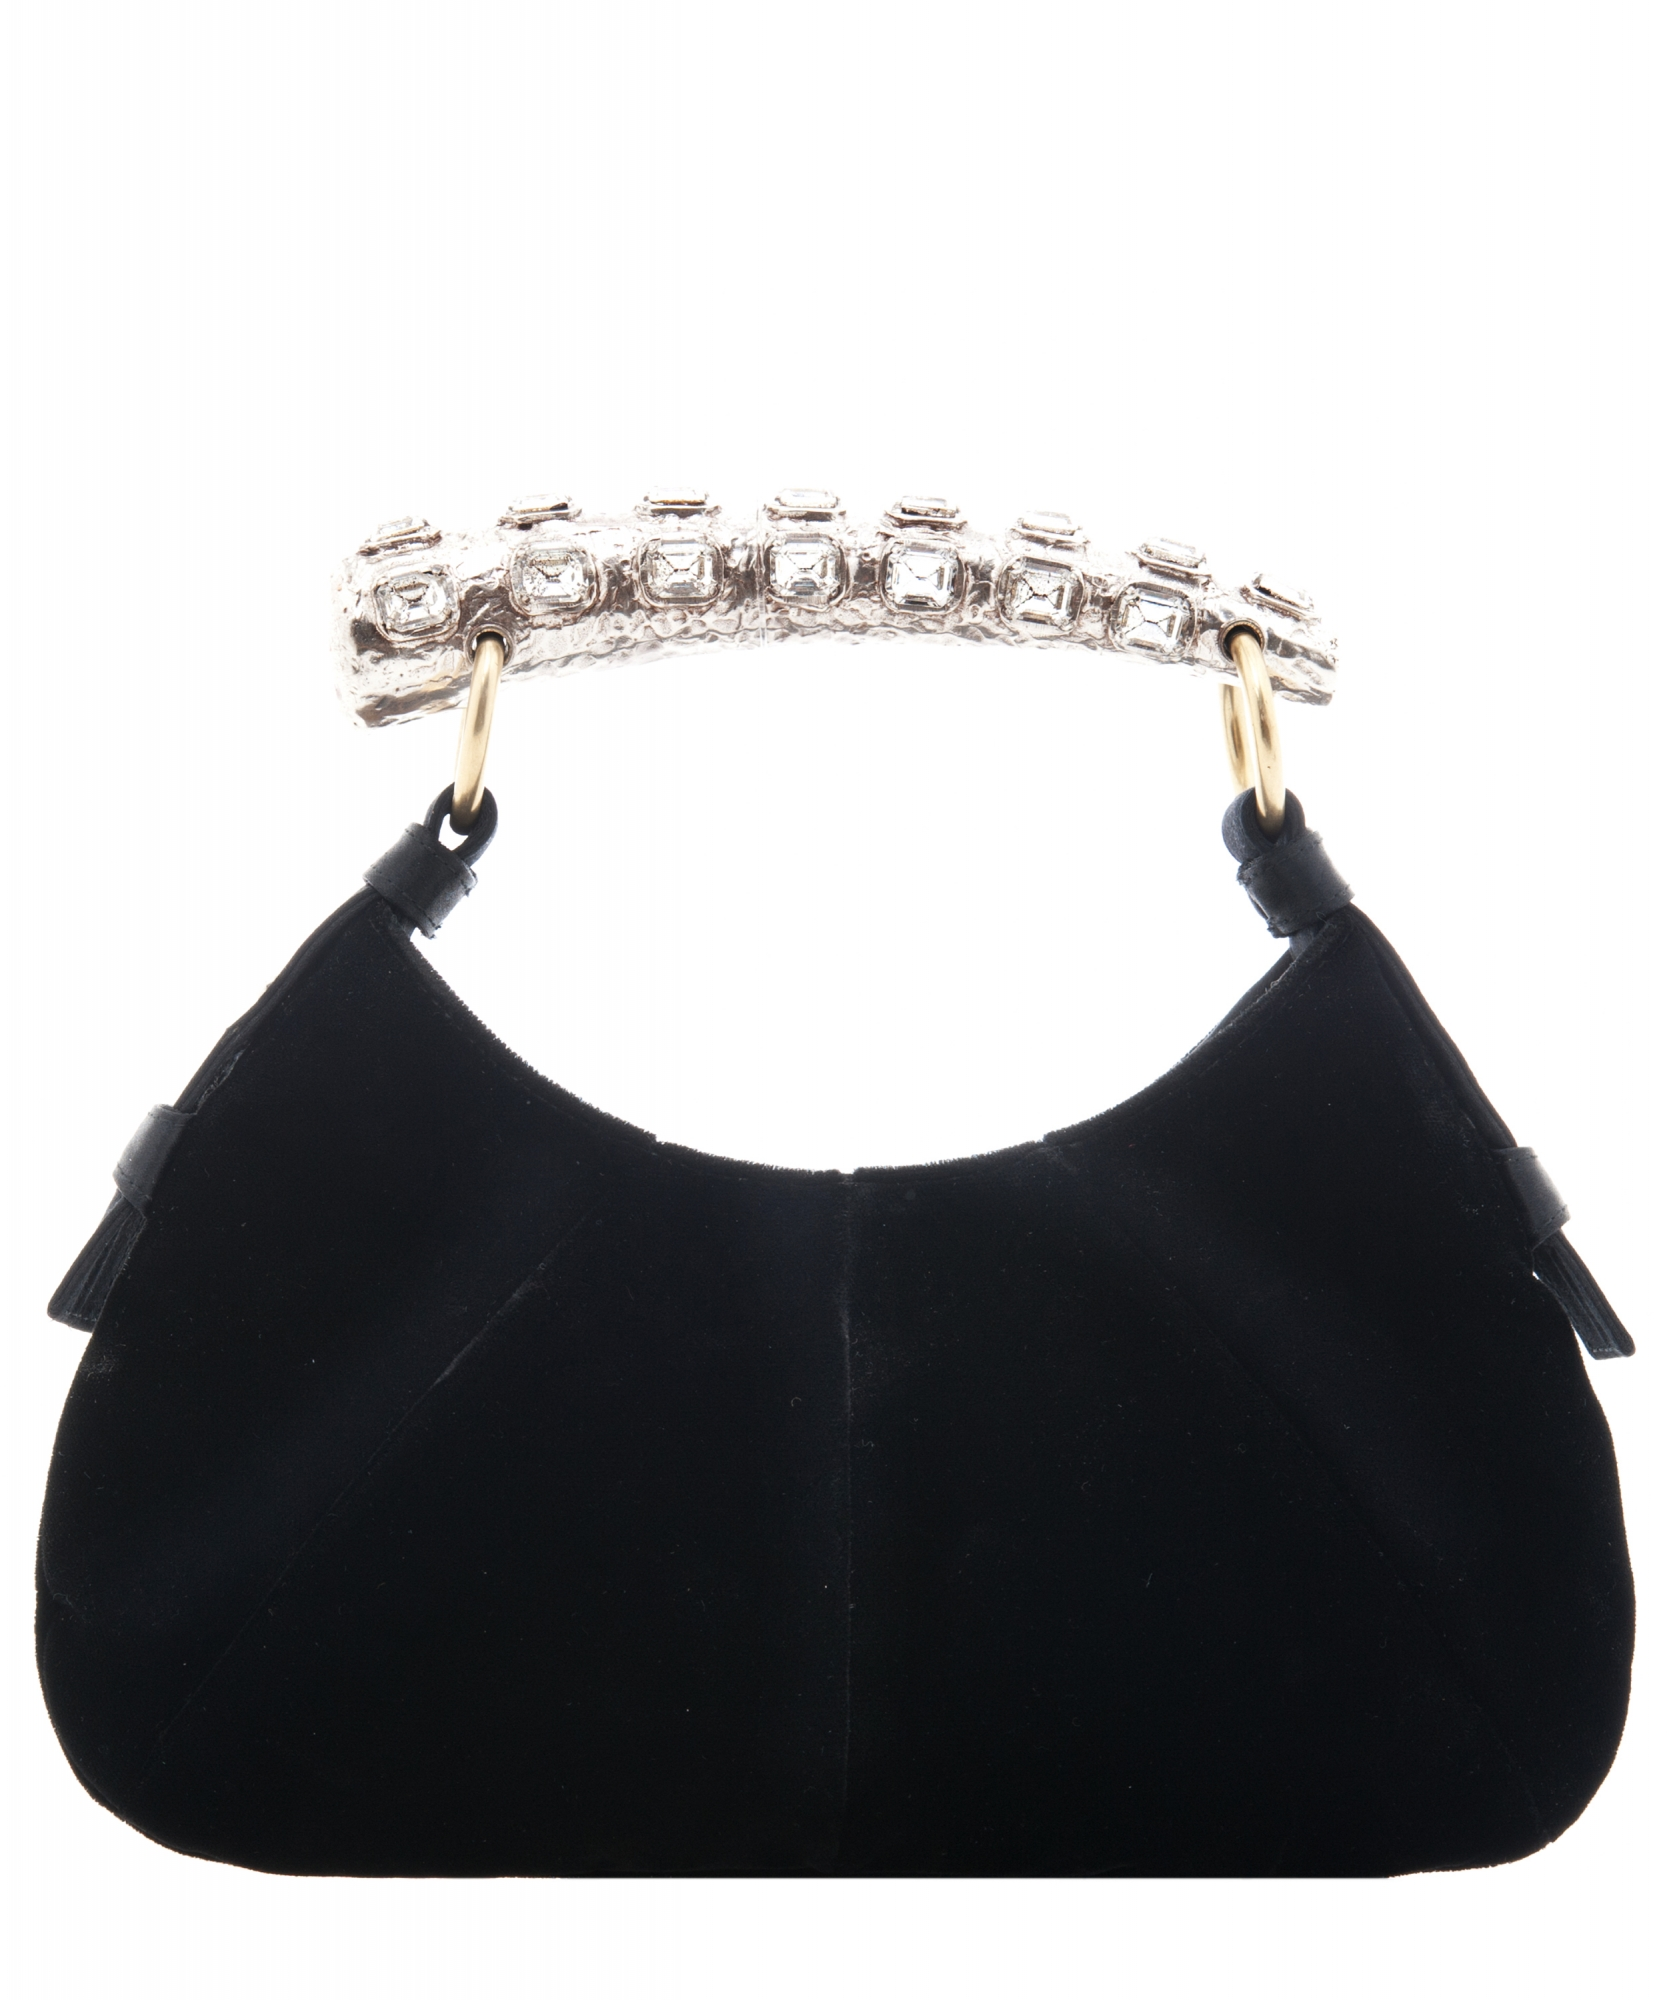 a20cbaac33b6 Yves Saint Laurent  Mombasa  Evening Bag in Black Velvet